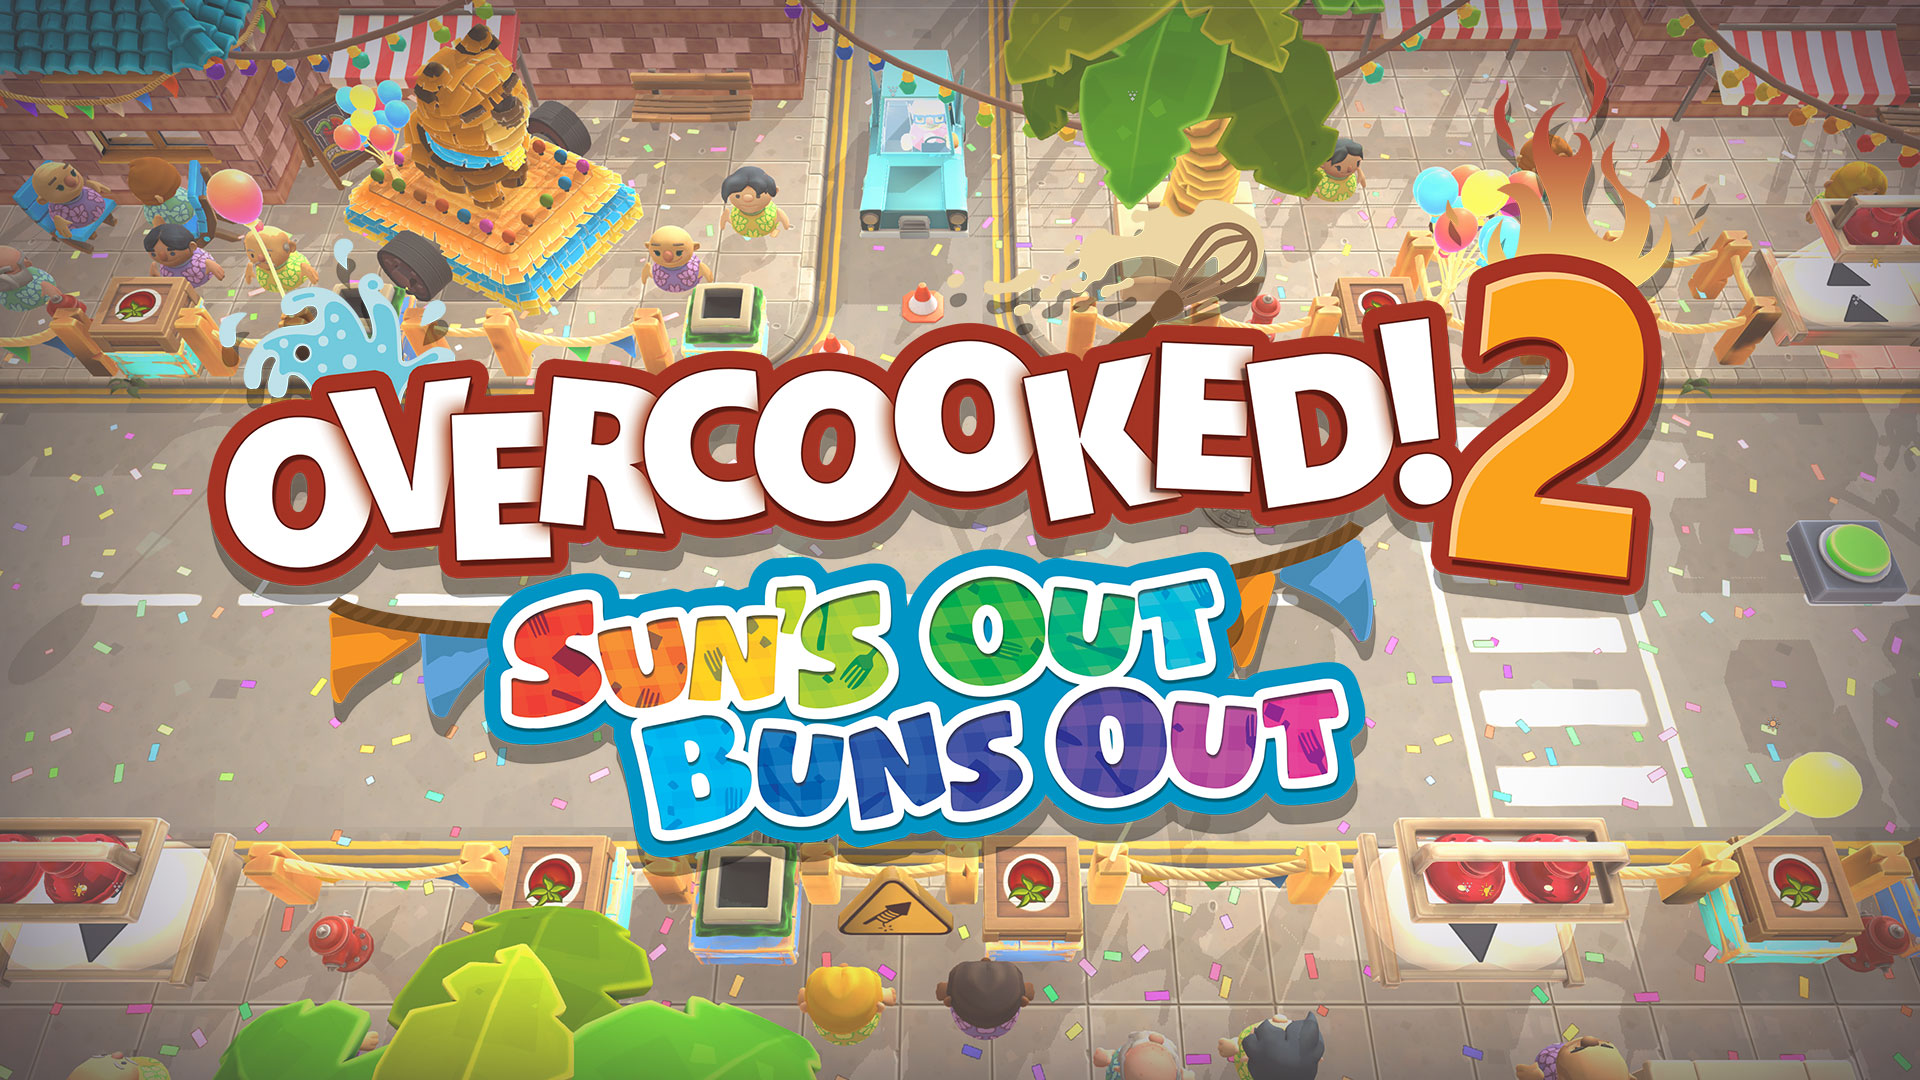 Introducing: Overcooked! 2 – Sun's Out, Buns Out!